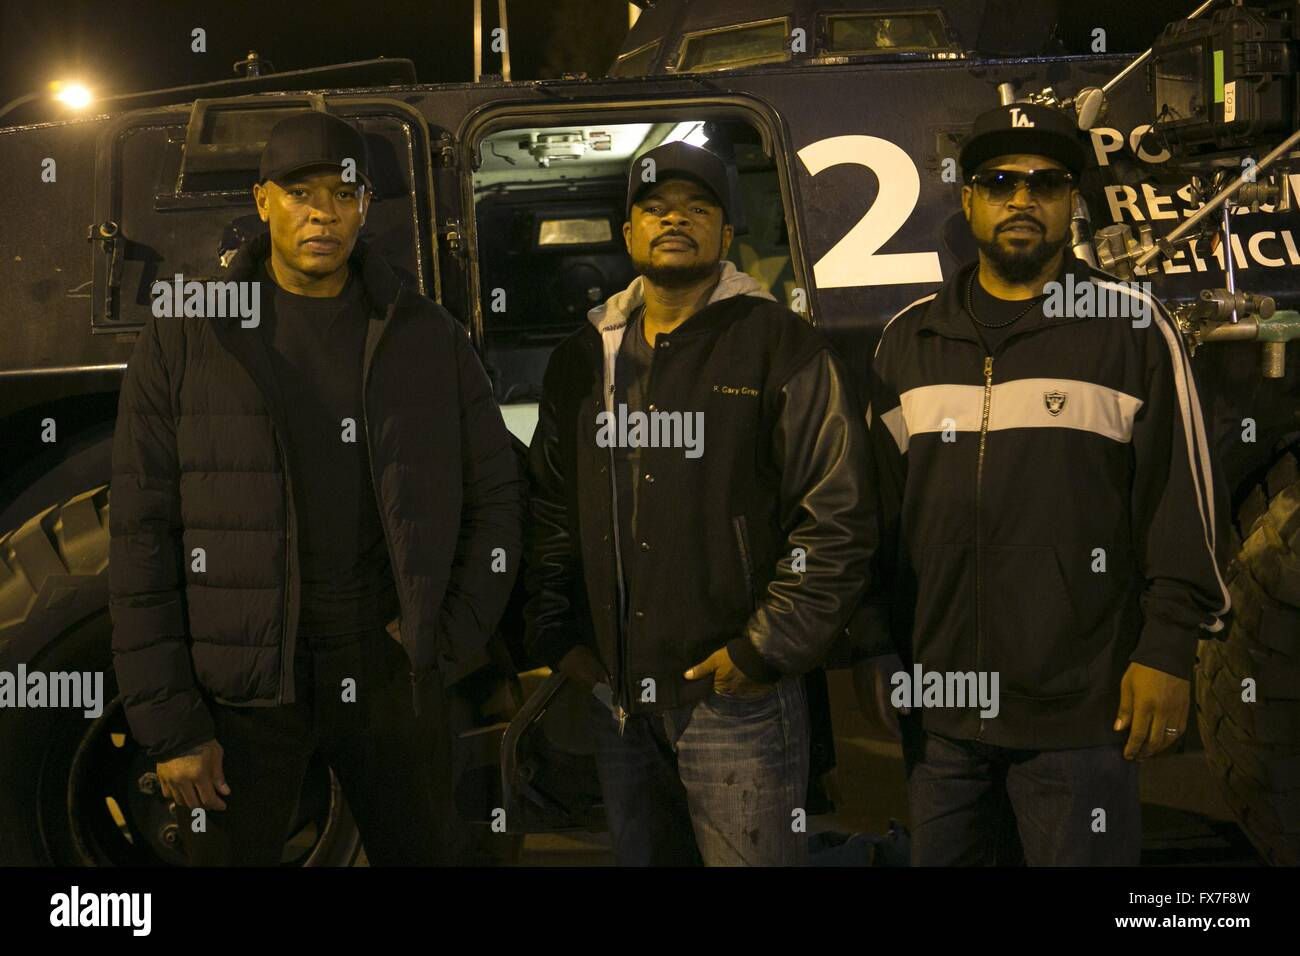 Straight Outta Compton Year : 2015 USA Realisateur : F. Gary Gray Dr. Dre, F. Gary Gray, Ice Cube Shooting picture - Stock Image